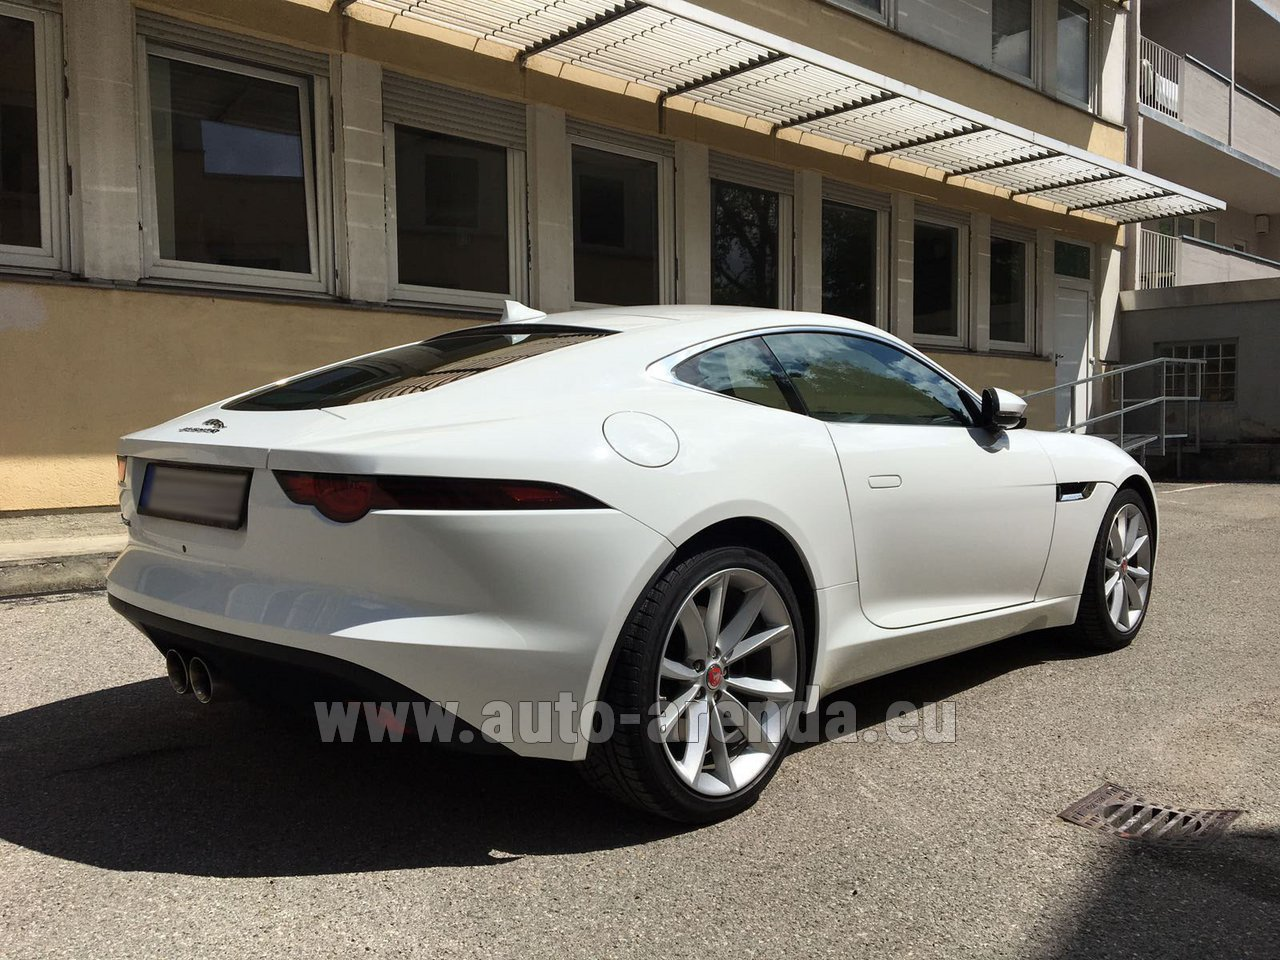 sainte maxime jaguar f type 3 0 coupe rental. Black Bedroom Furniture Sets. Home Design Ideas